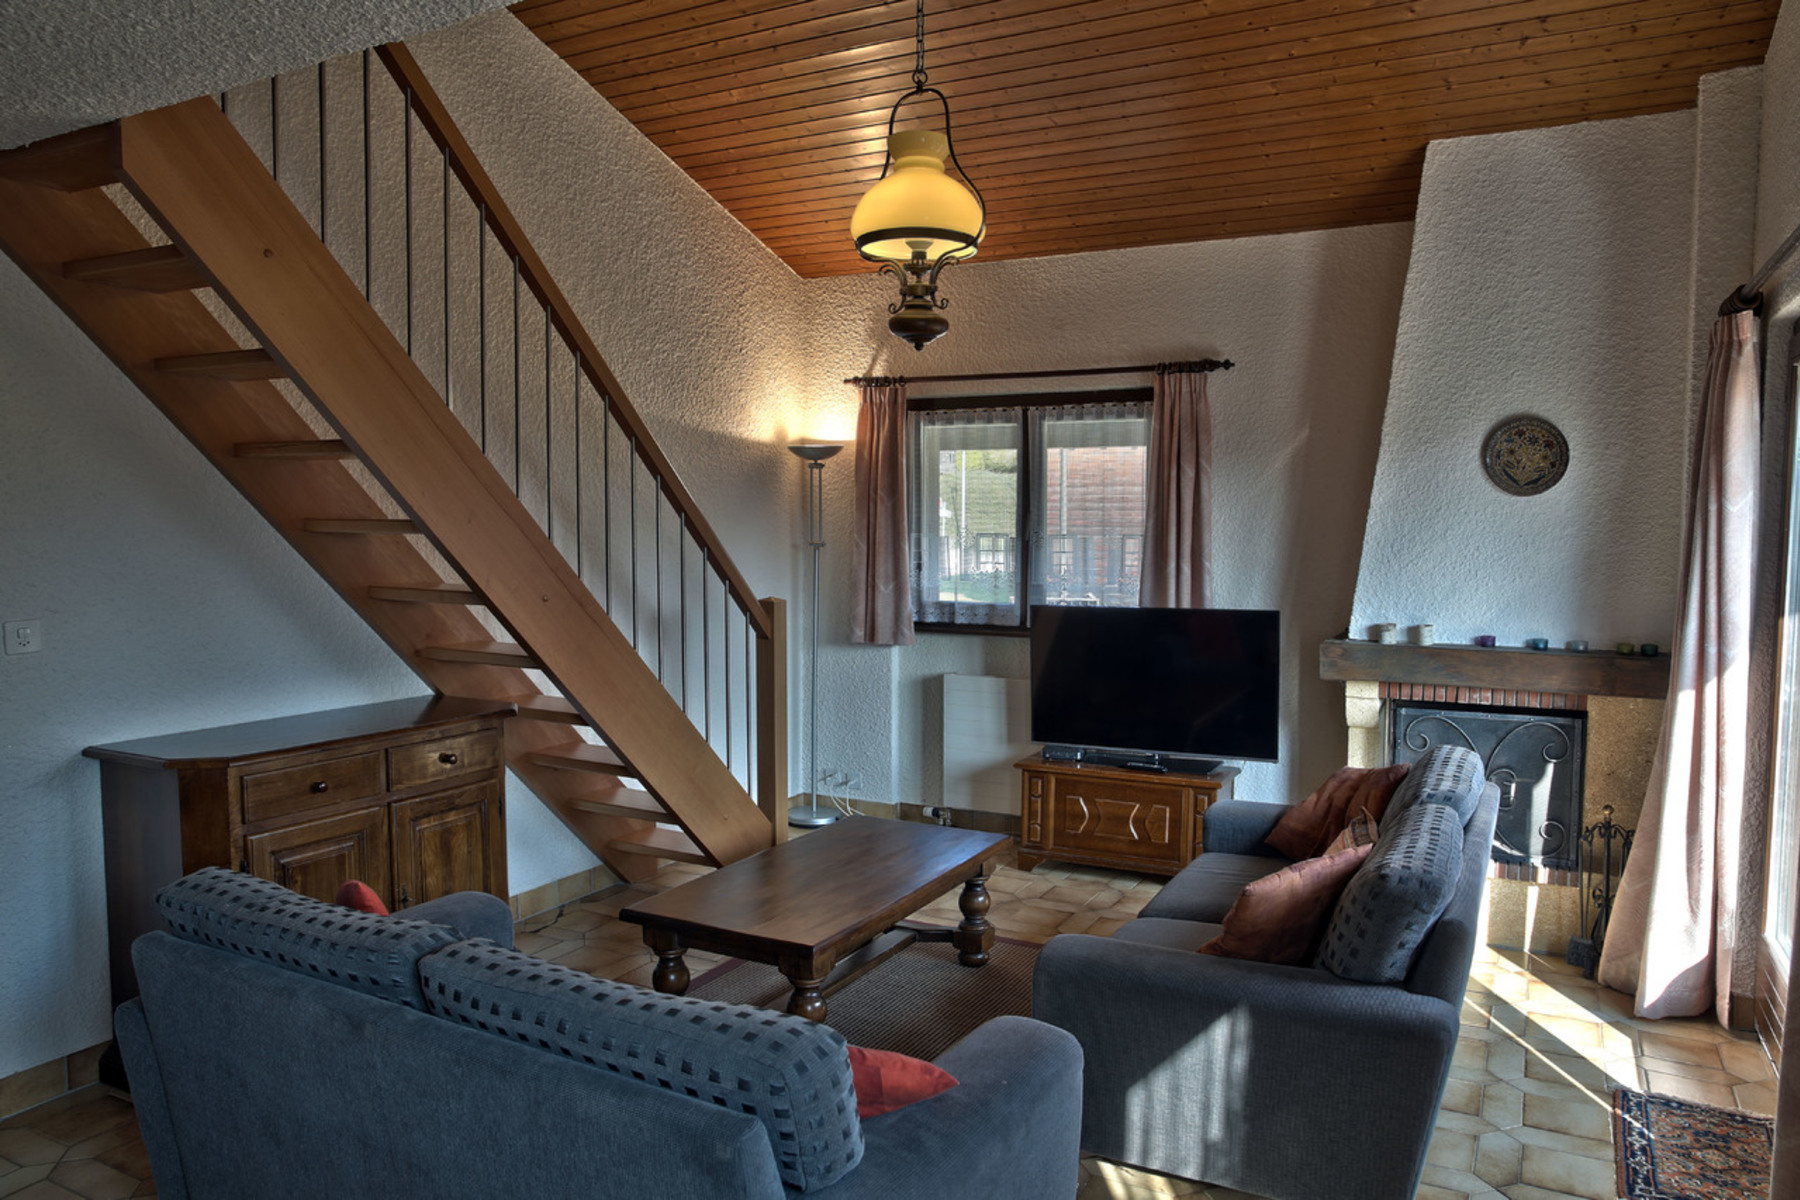 Apartment for Sale at Les Pins E4 Route des Pins 3 Chesieres, Vaud, 1885 Switzerland